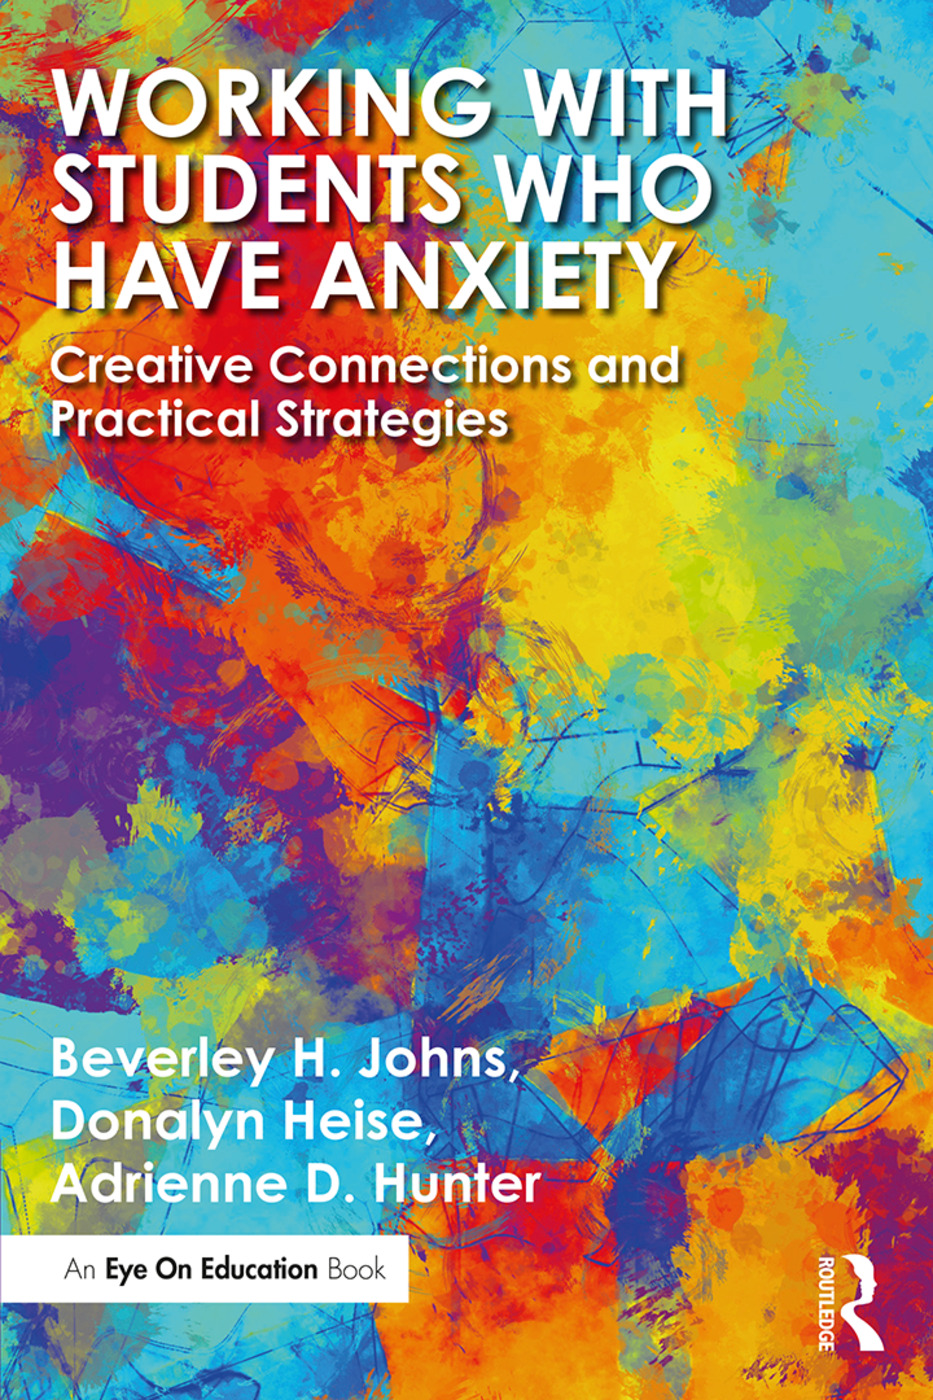 Working with Students Who Have Anxiety: Creative Connections and Practical Strategies book cover